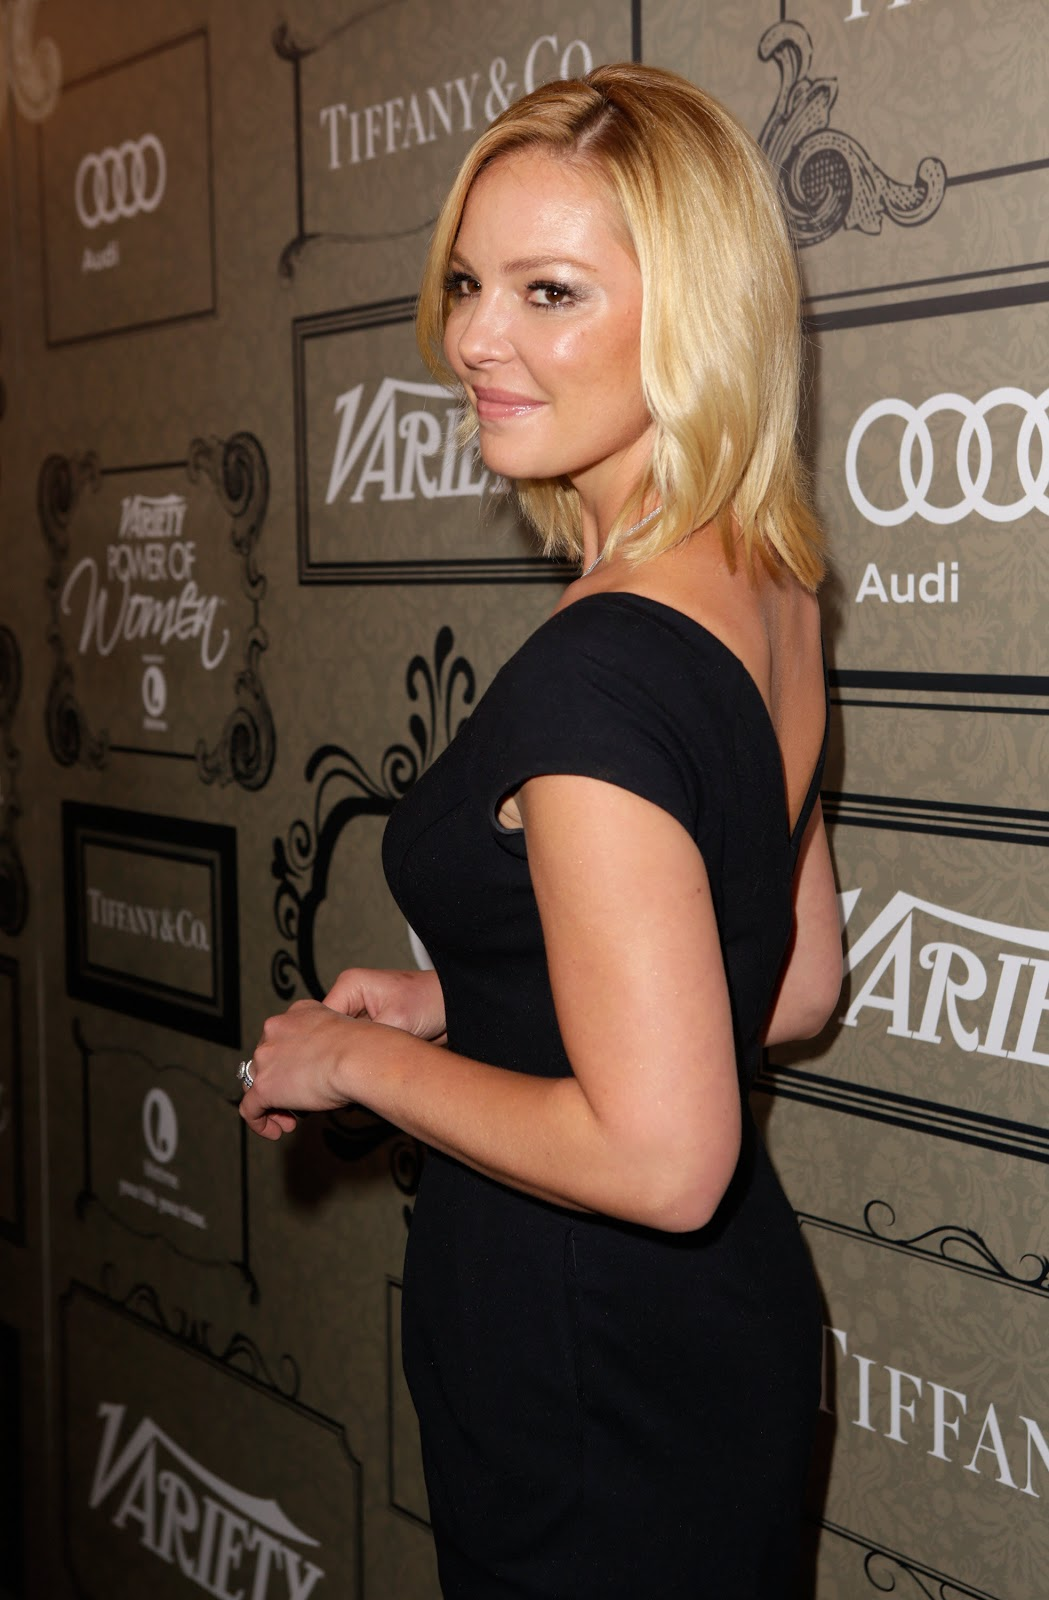 http://1.bp.blogspot.com/-SiJsxS6R8_c/UIPZAI6jXjI/AAAAAAAAi_c/B1Q7MemOs1U/s1600/Katherine+Heigl+-+Variety%2527s+4th+Annual+Power+of+Women+Event+in+Beverly+Hills+-+October+10%252C+2012+3.jpg